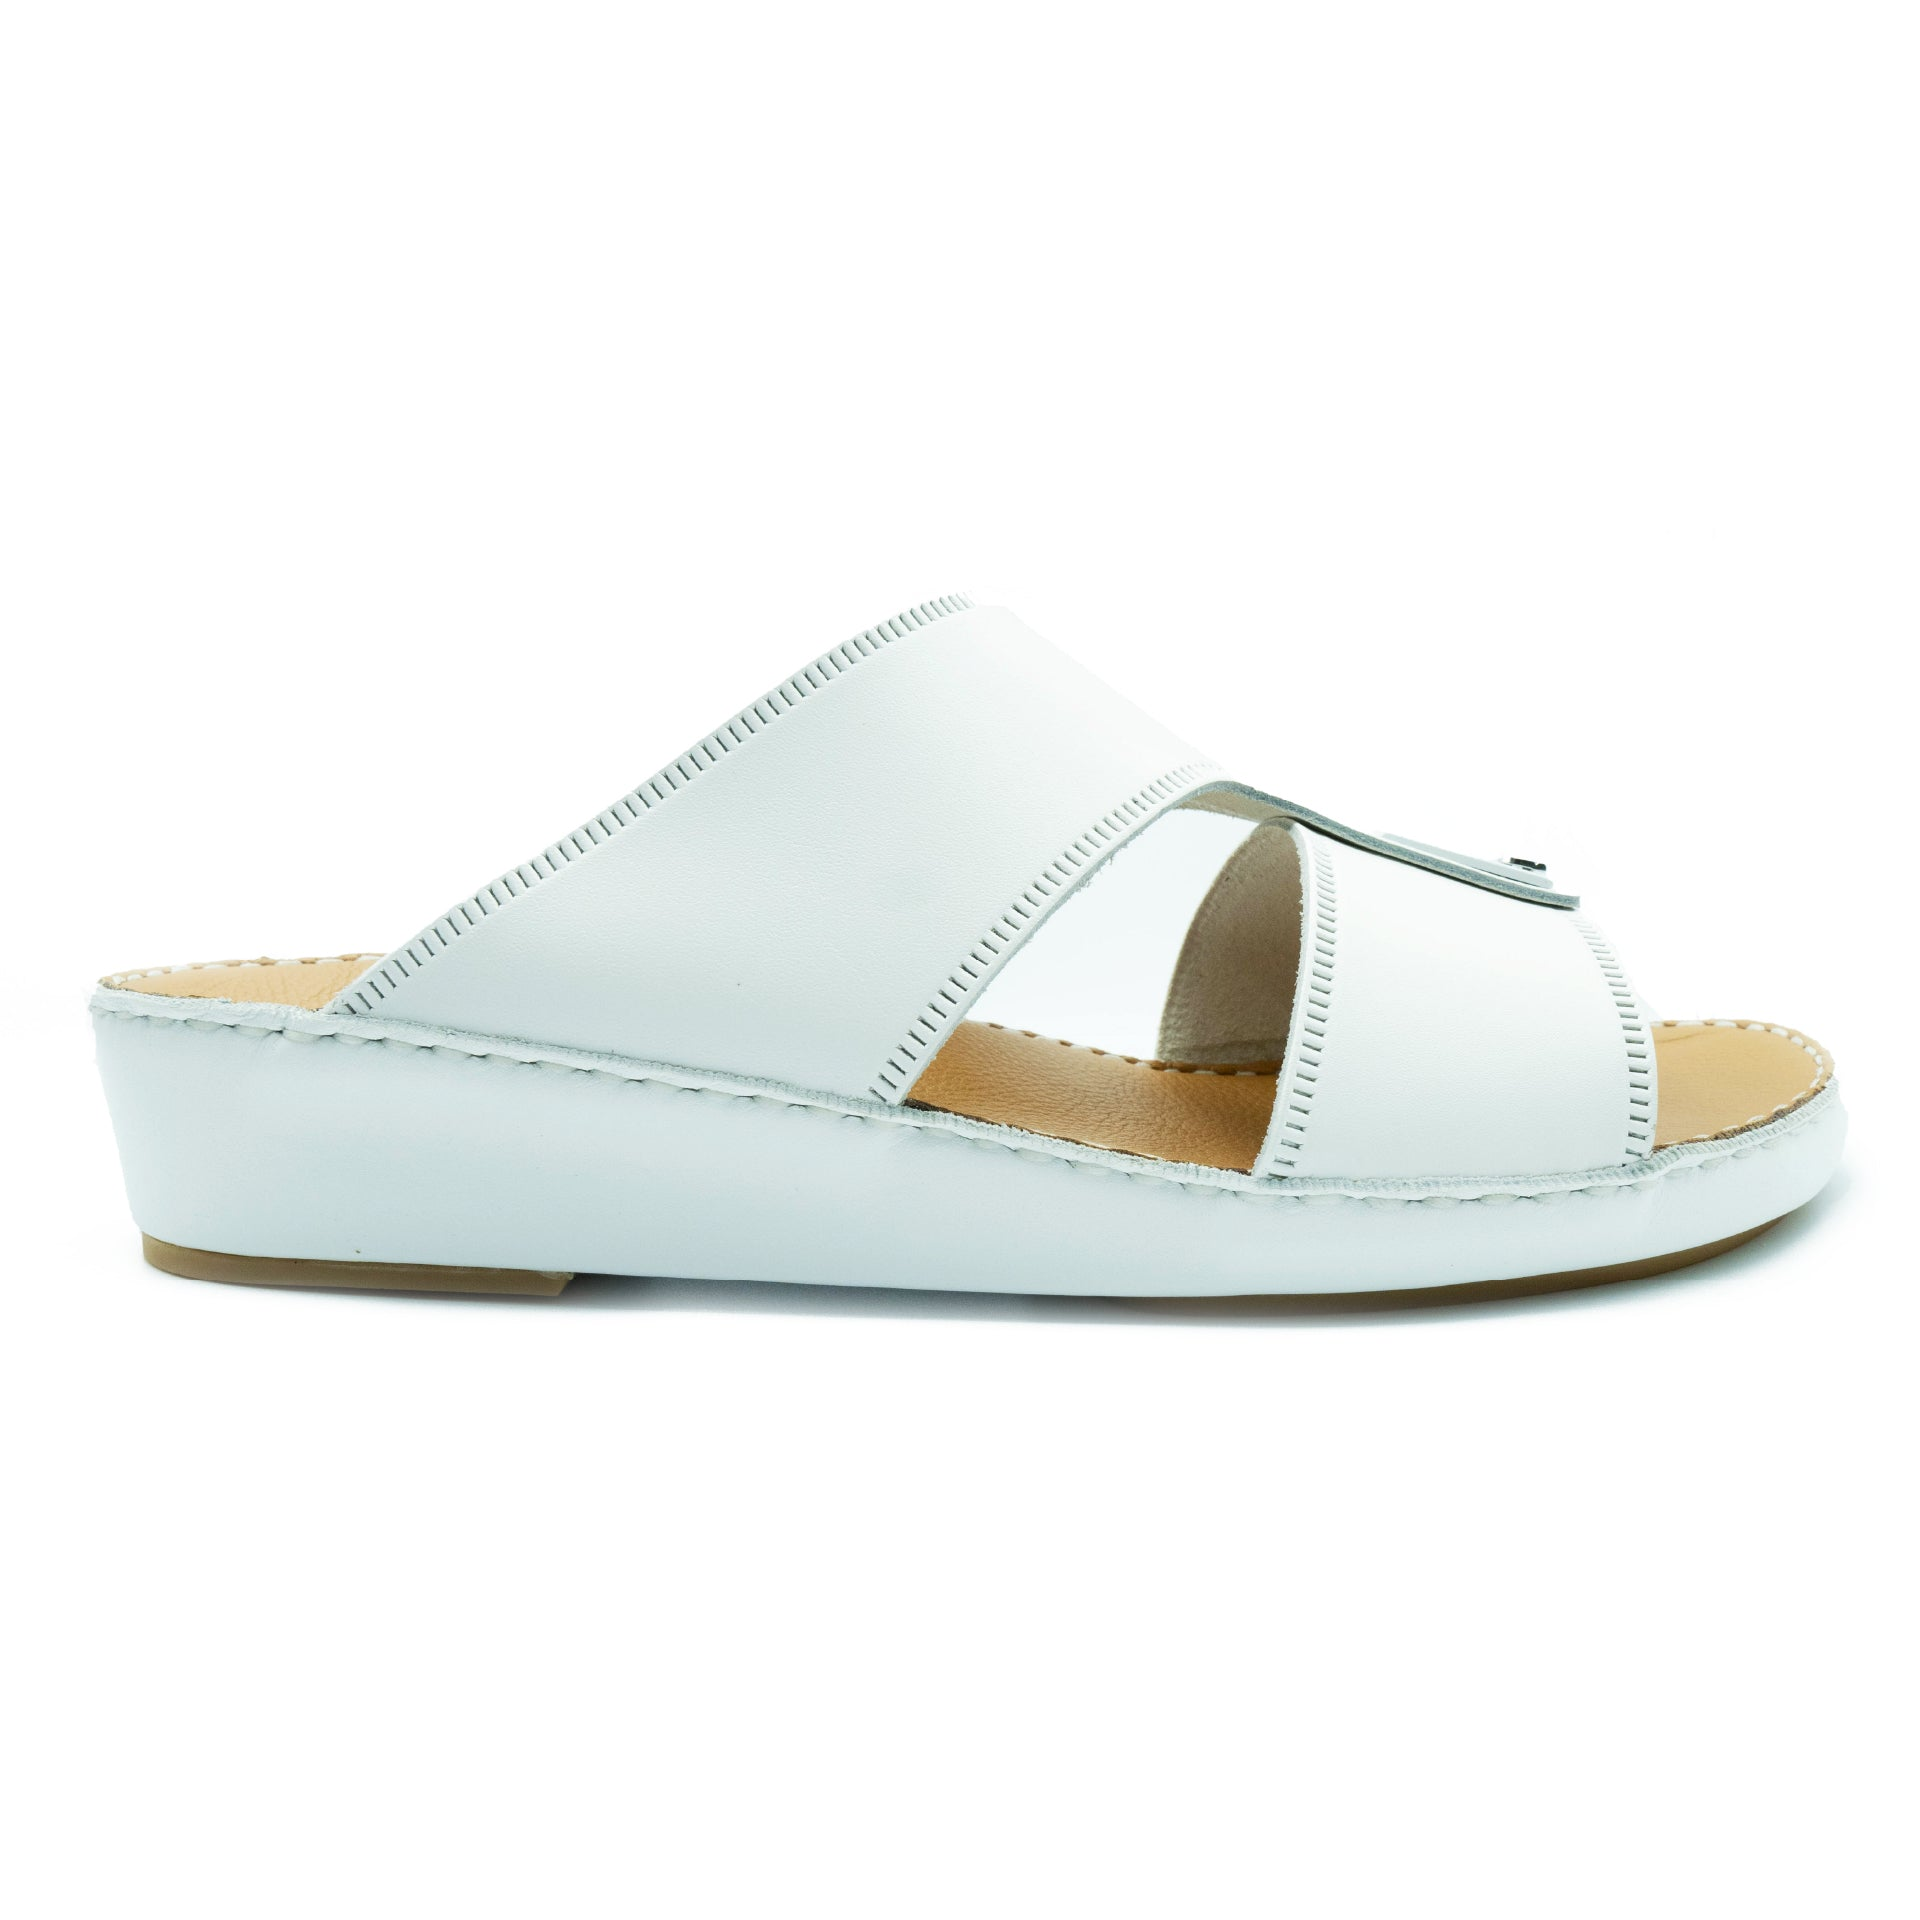 White Unlined Classic Flat Sandals  RamadAn Collection  Arabic Sandals  Accessories